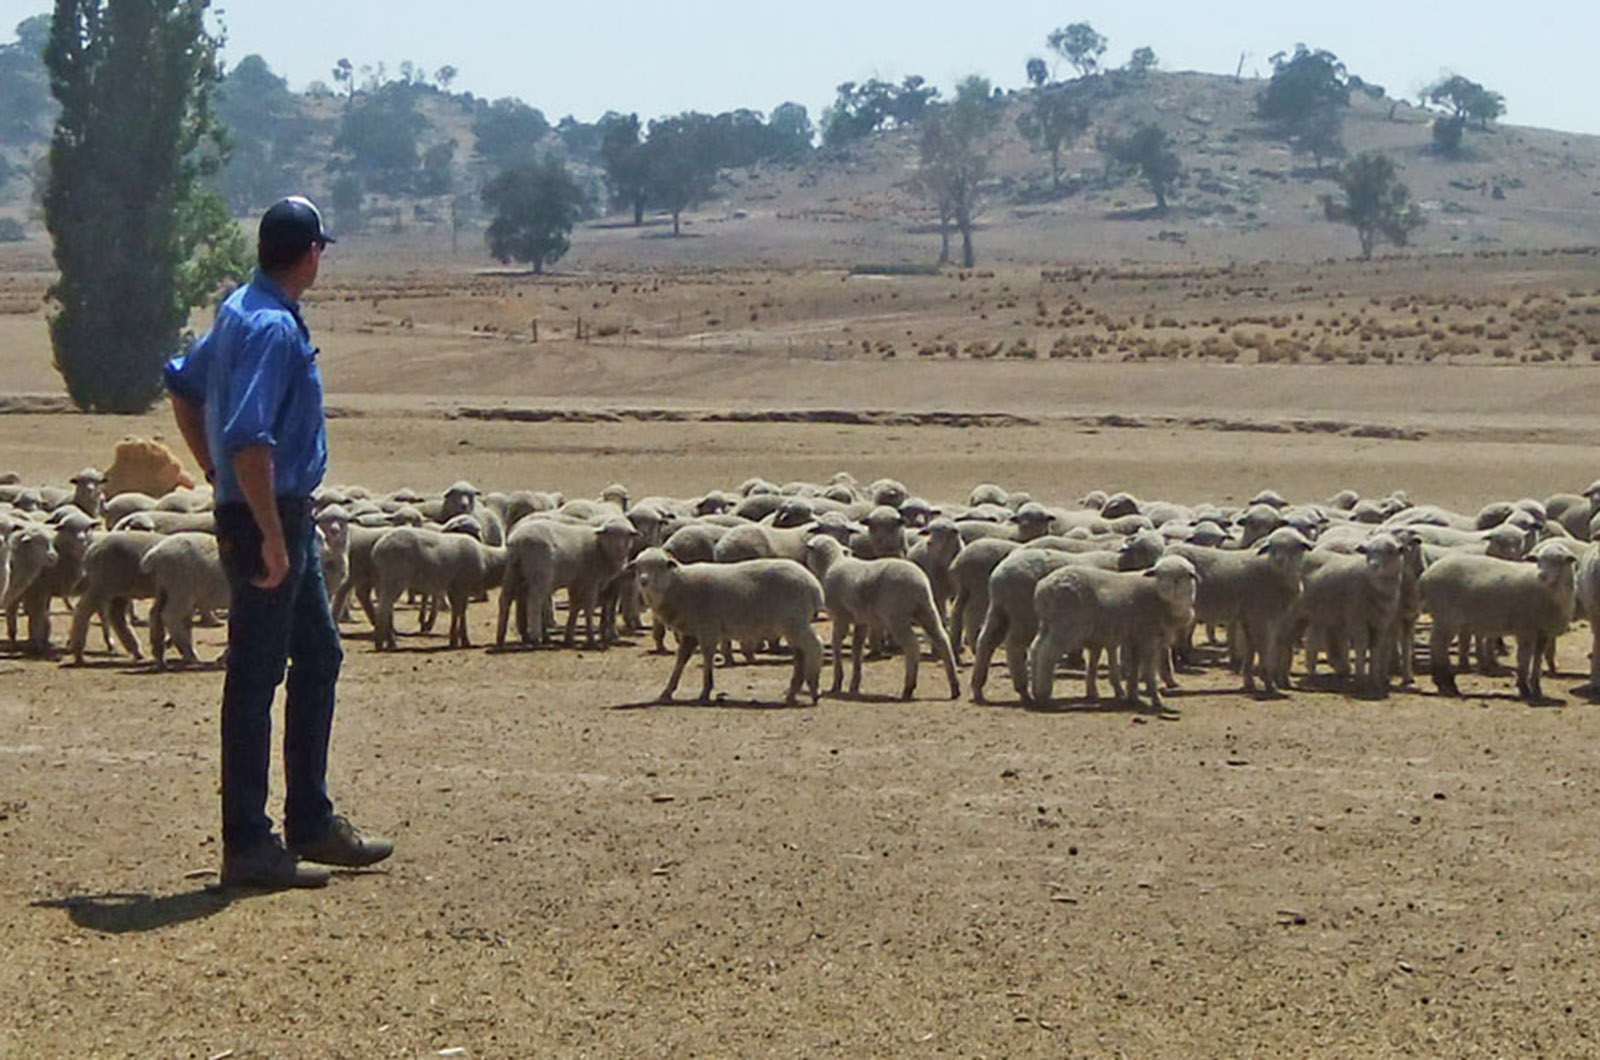 Farmer in sacrifice paddock with sheep